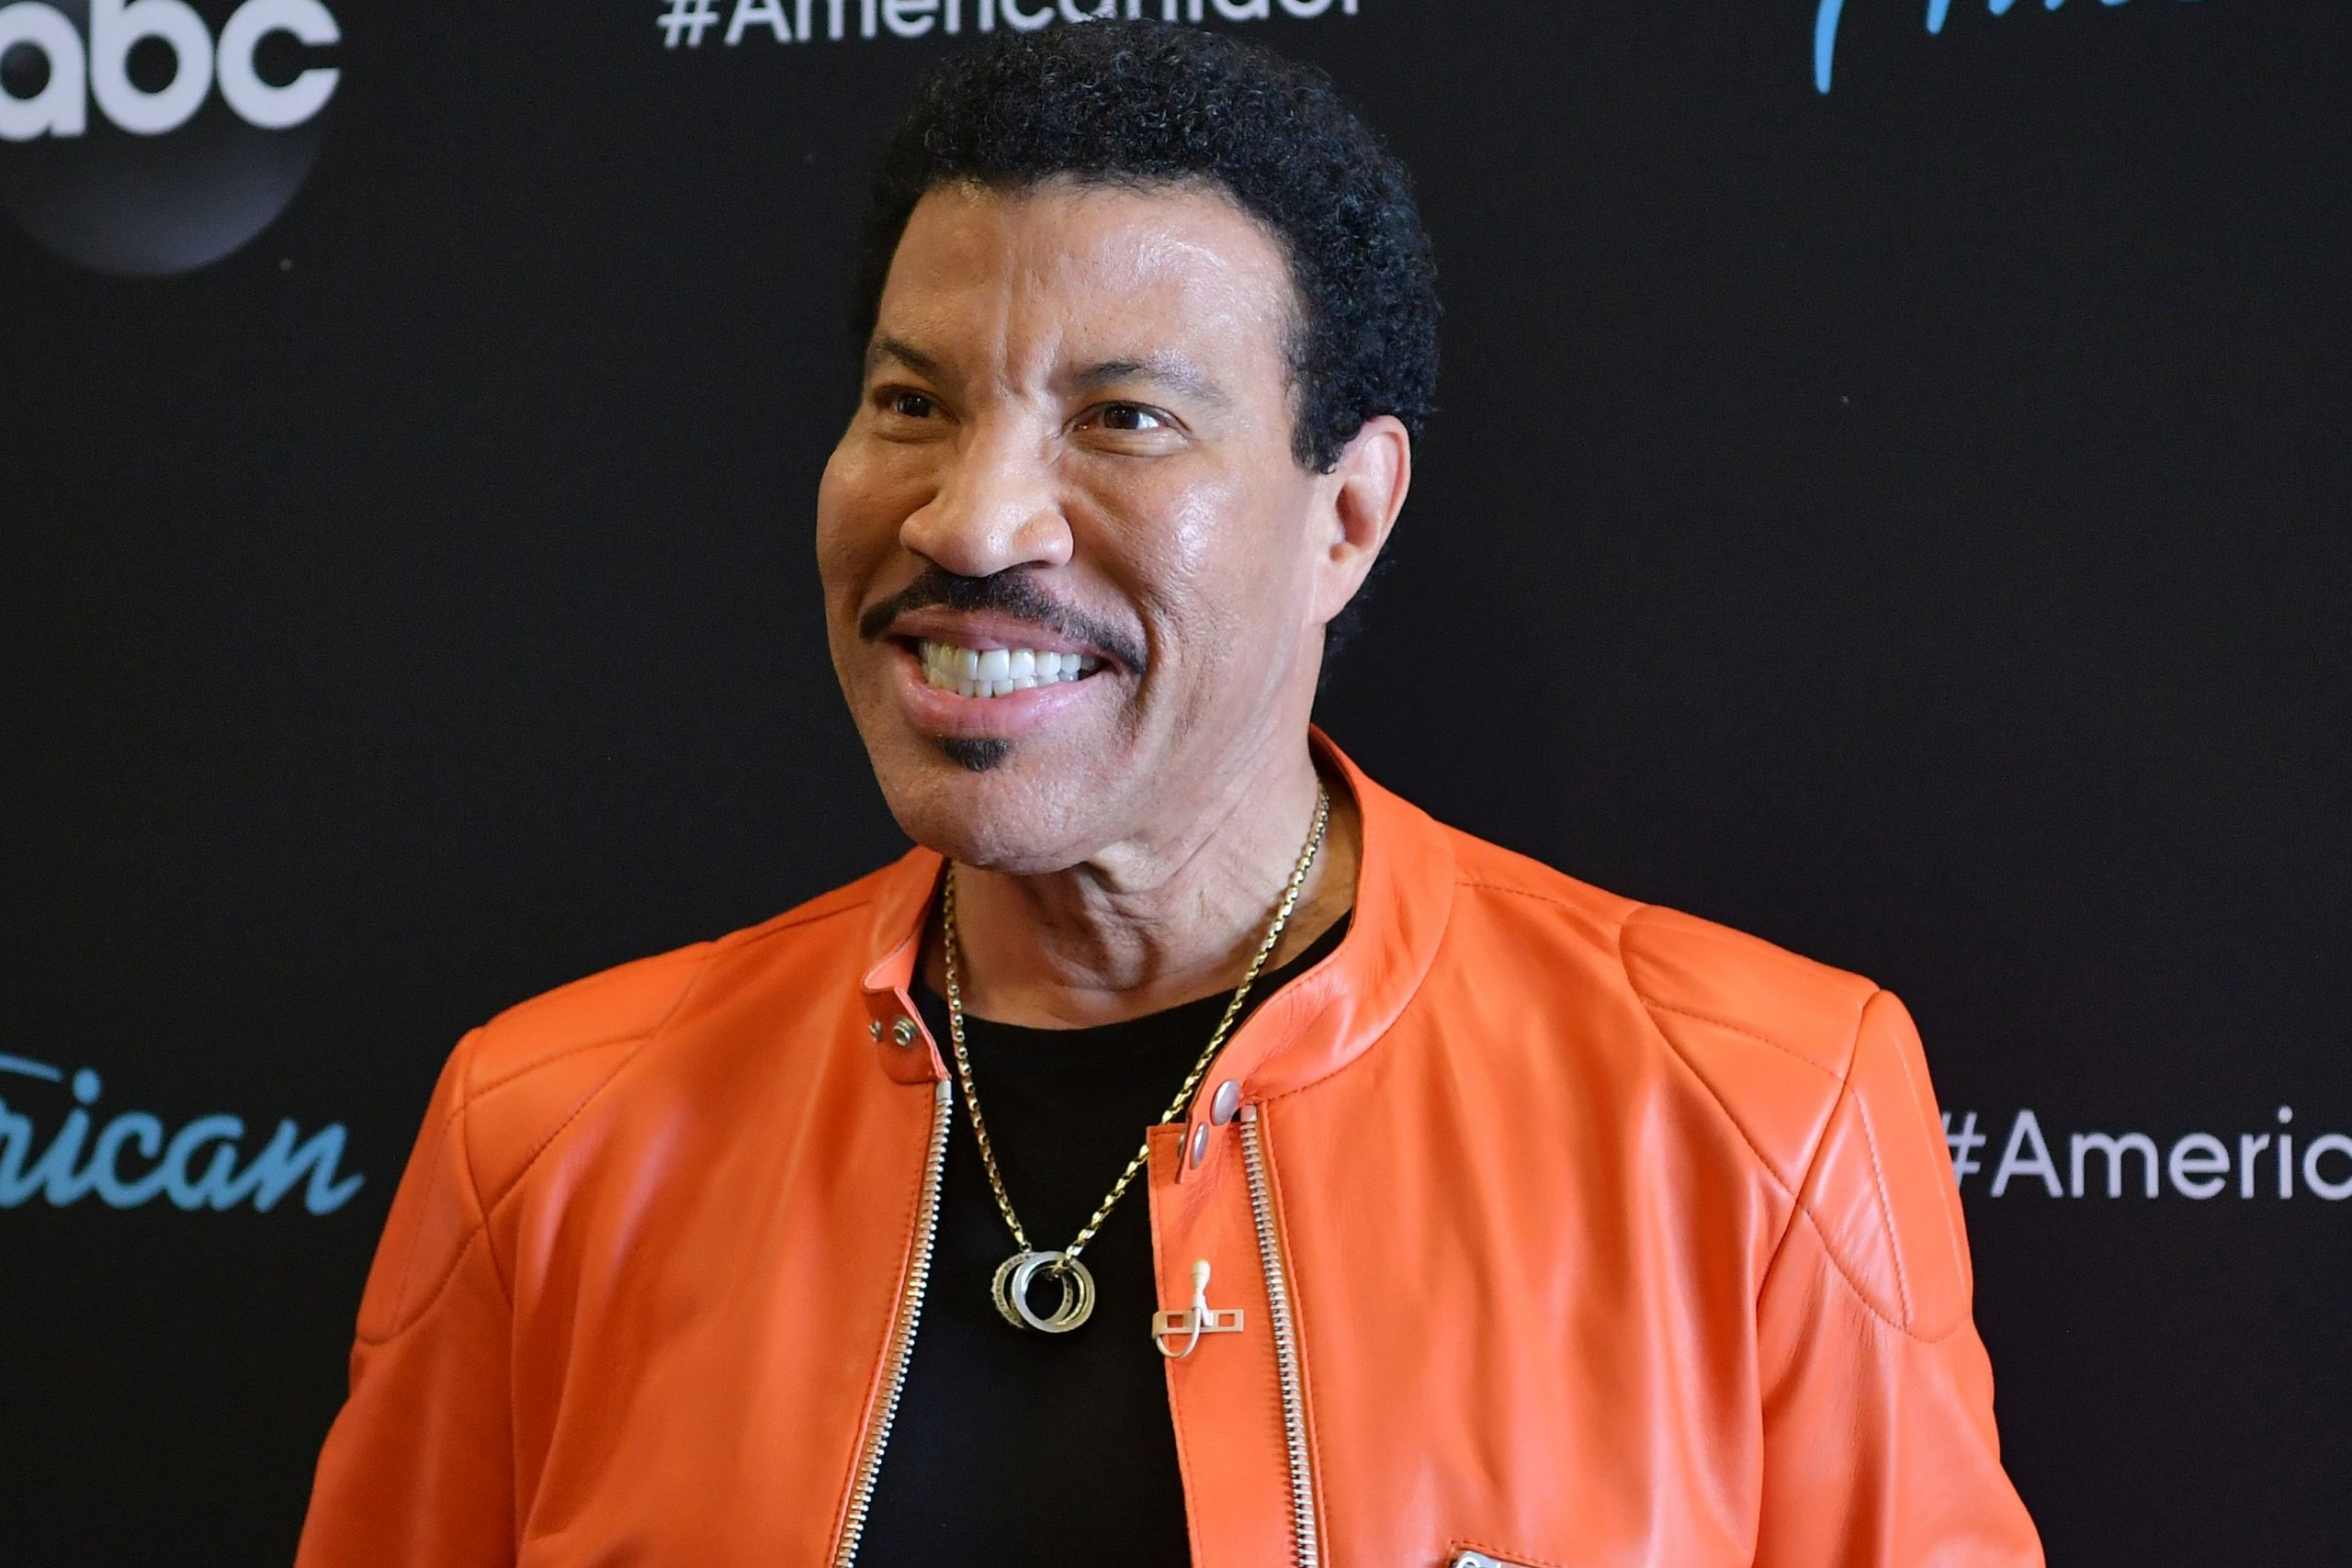 Lionel Richie's Music Will Be The Focus Of A New Disney Movie